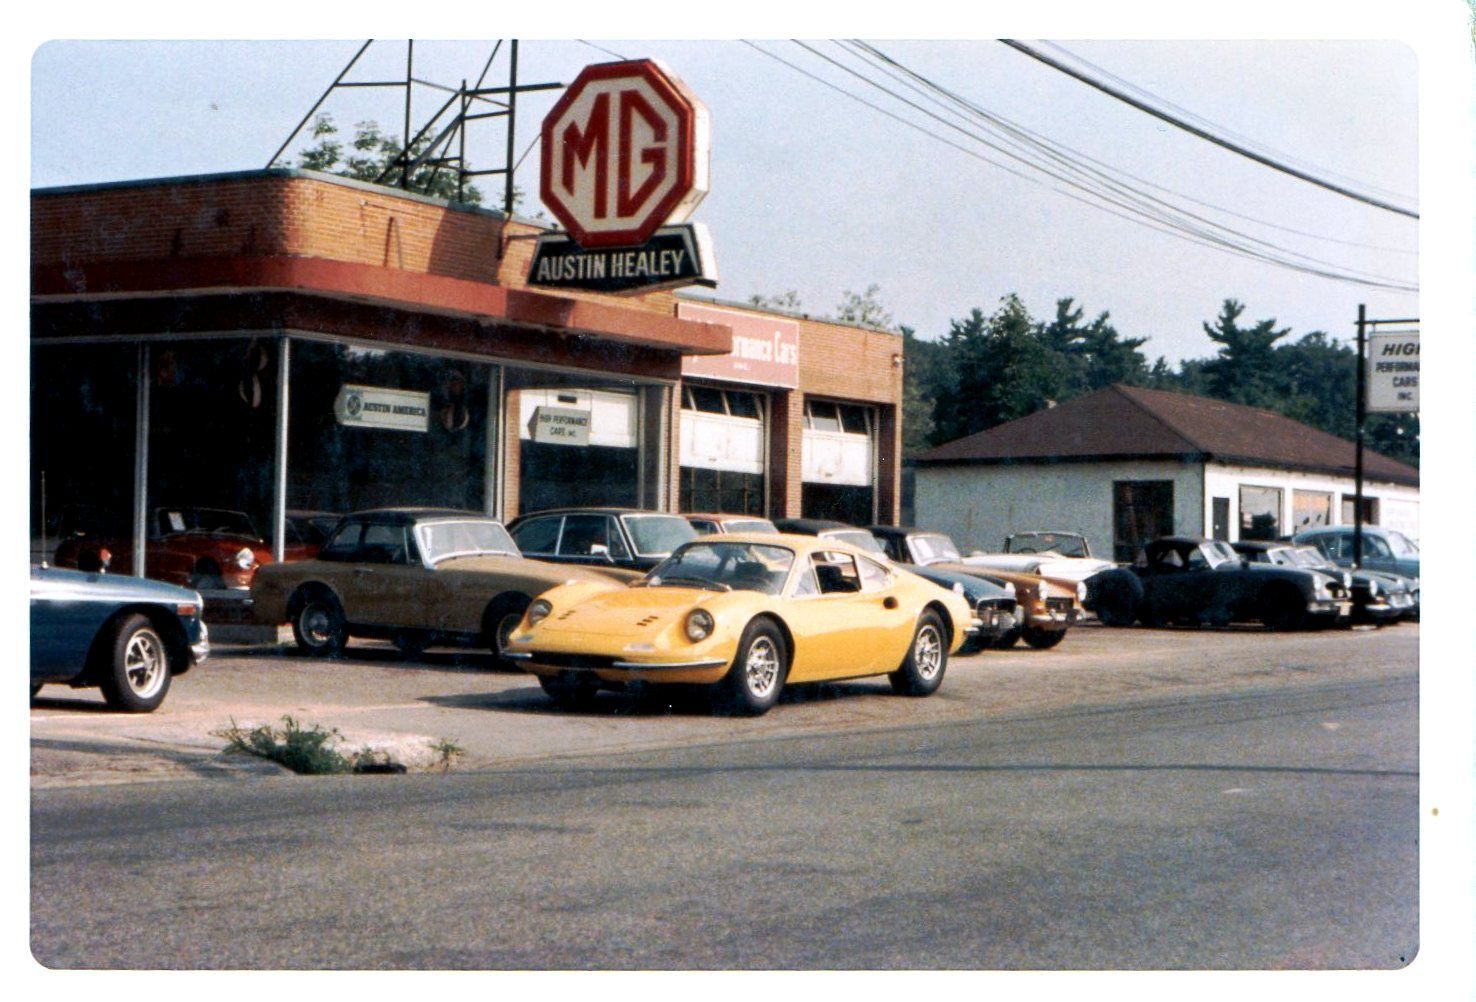 A yellow Dino 206 GT parked in front of an american MG